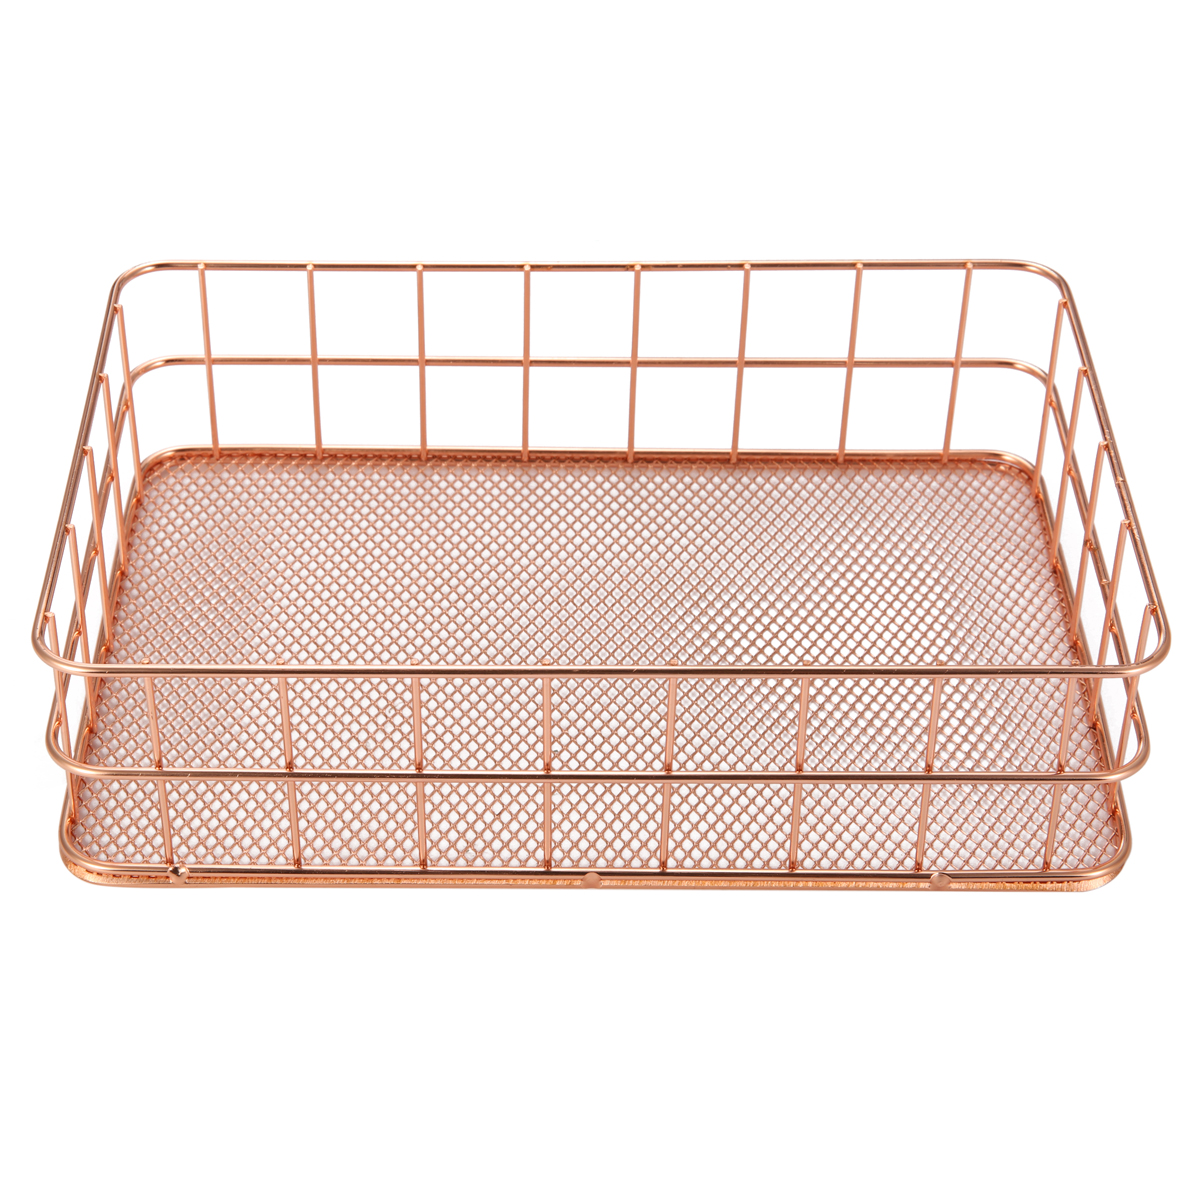 24X16X6cm Elegant Rose Gold Square Iron Desktop Storage Case Organizer for Office Home